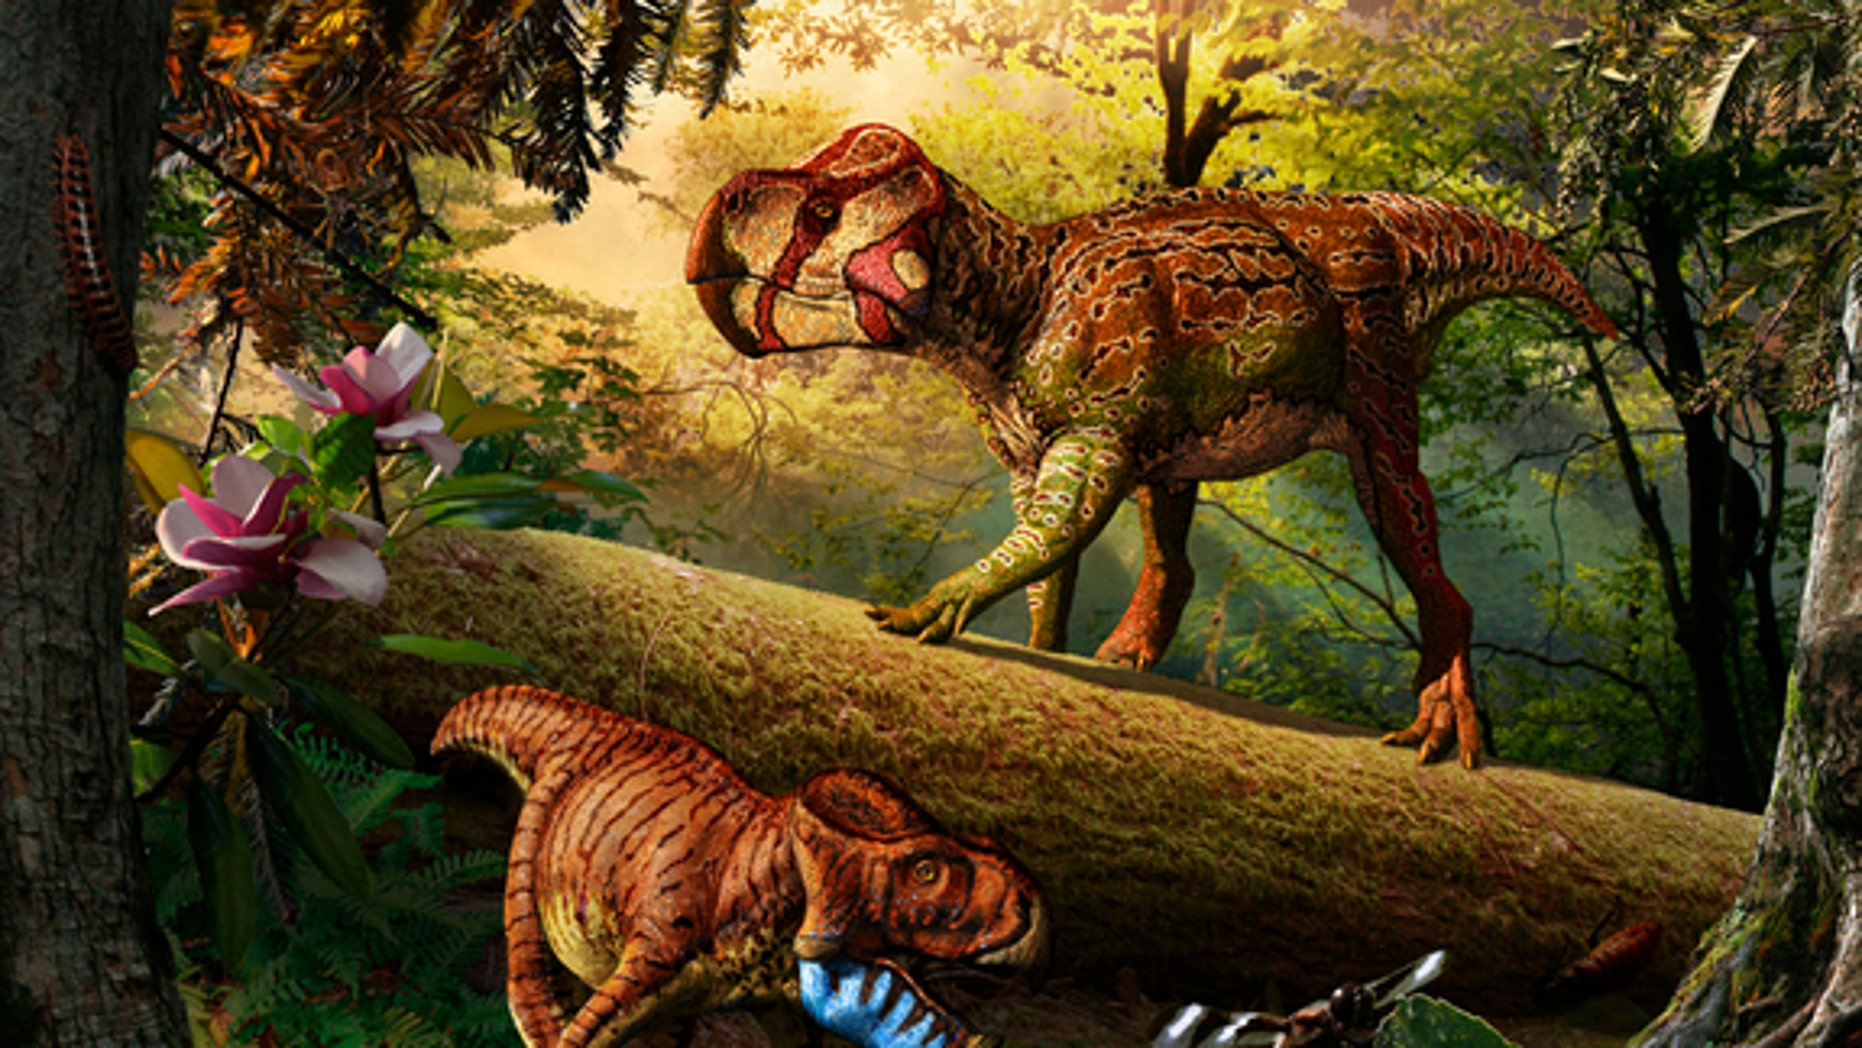 Duck-billed and horned dinosaurs reached their peak some 75 million years ago in North America, with researchers suggesting the surge in dinosaur diversity may be related to the uplift of the Rockies. (Shown here, two 75-million-year-old horned dinosaurs found in Alberta, Canada.)